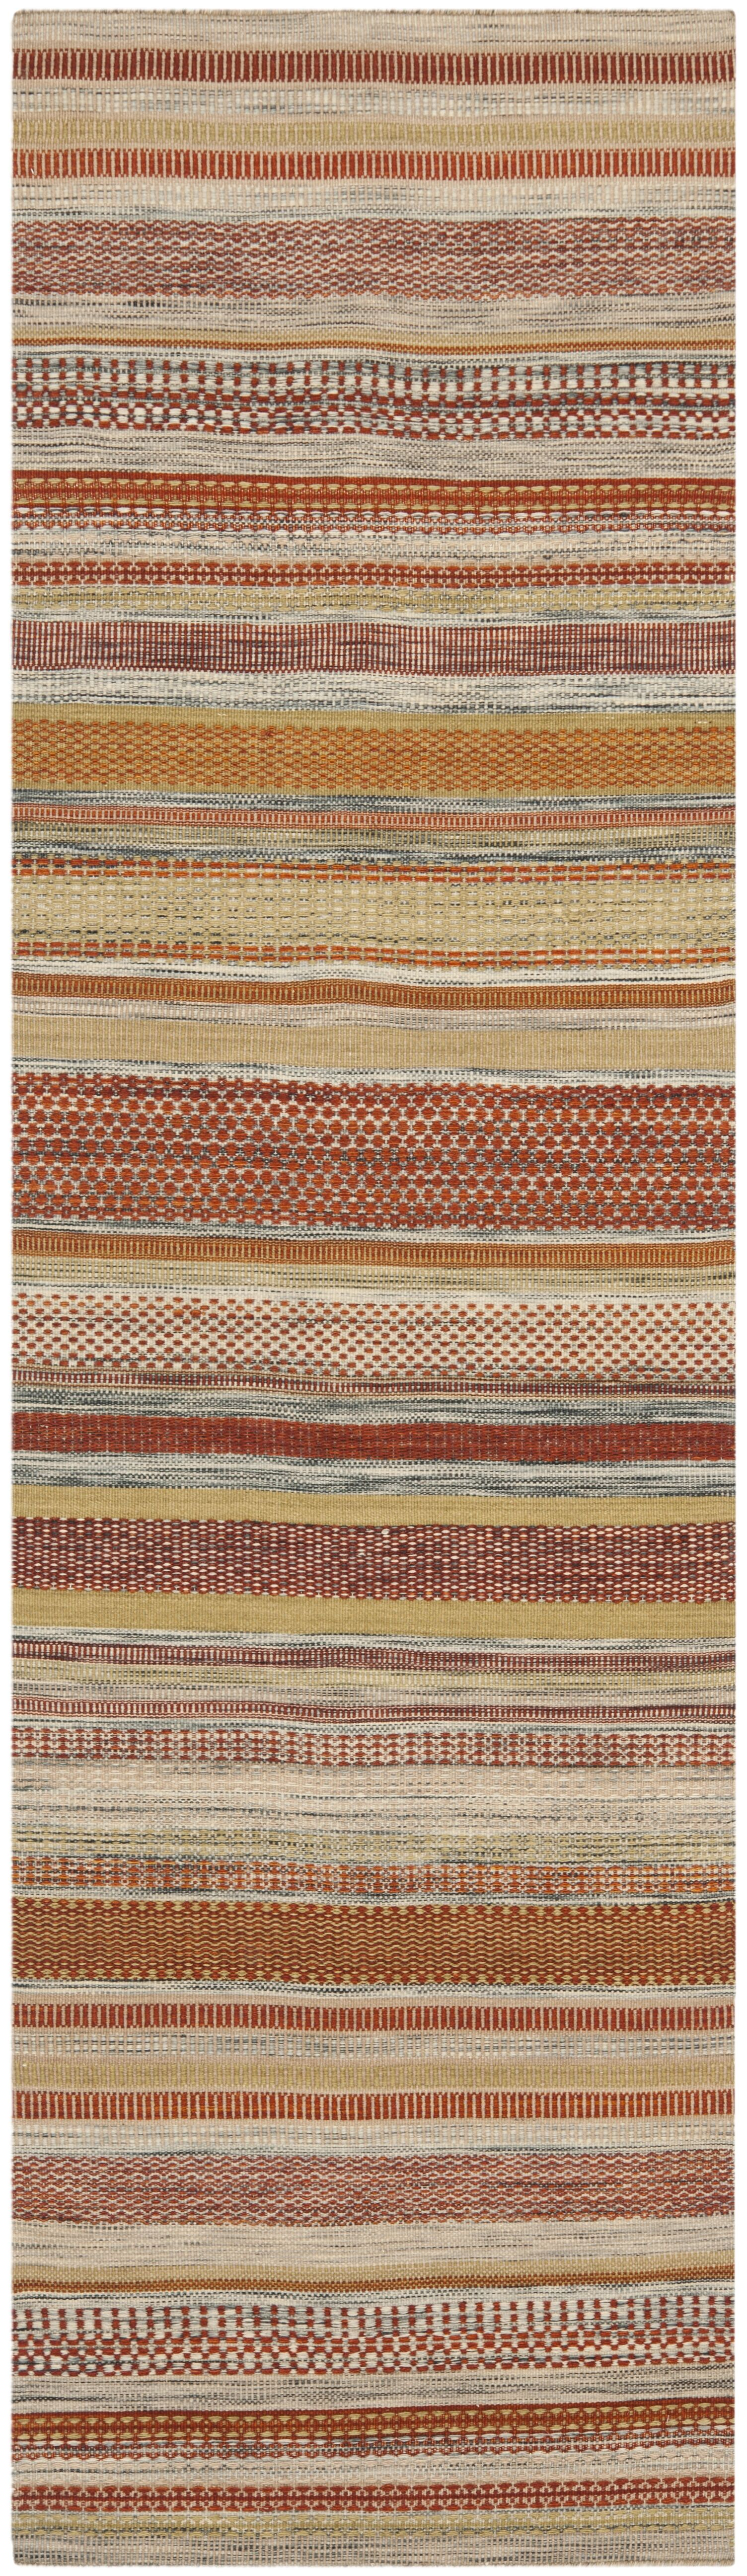 Striped Kilim Handwoven Flatweave Wool Brown/Beige Area Rug Rug Size: Rectangle 10' x 14'